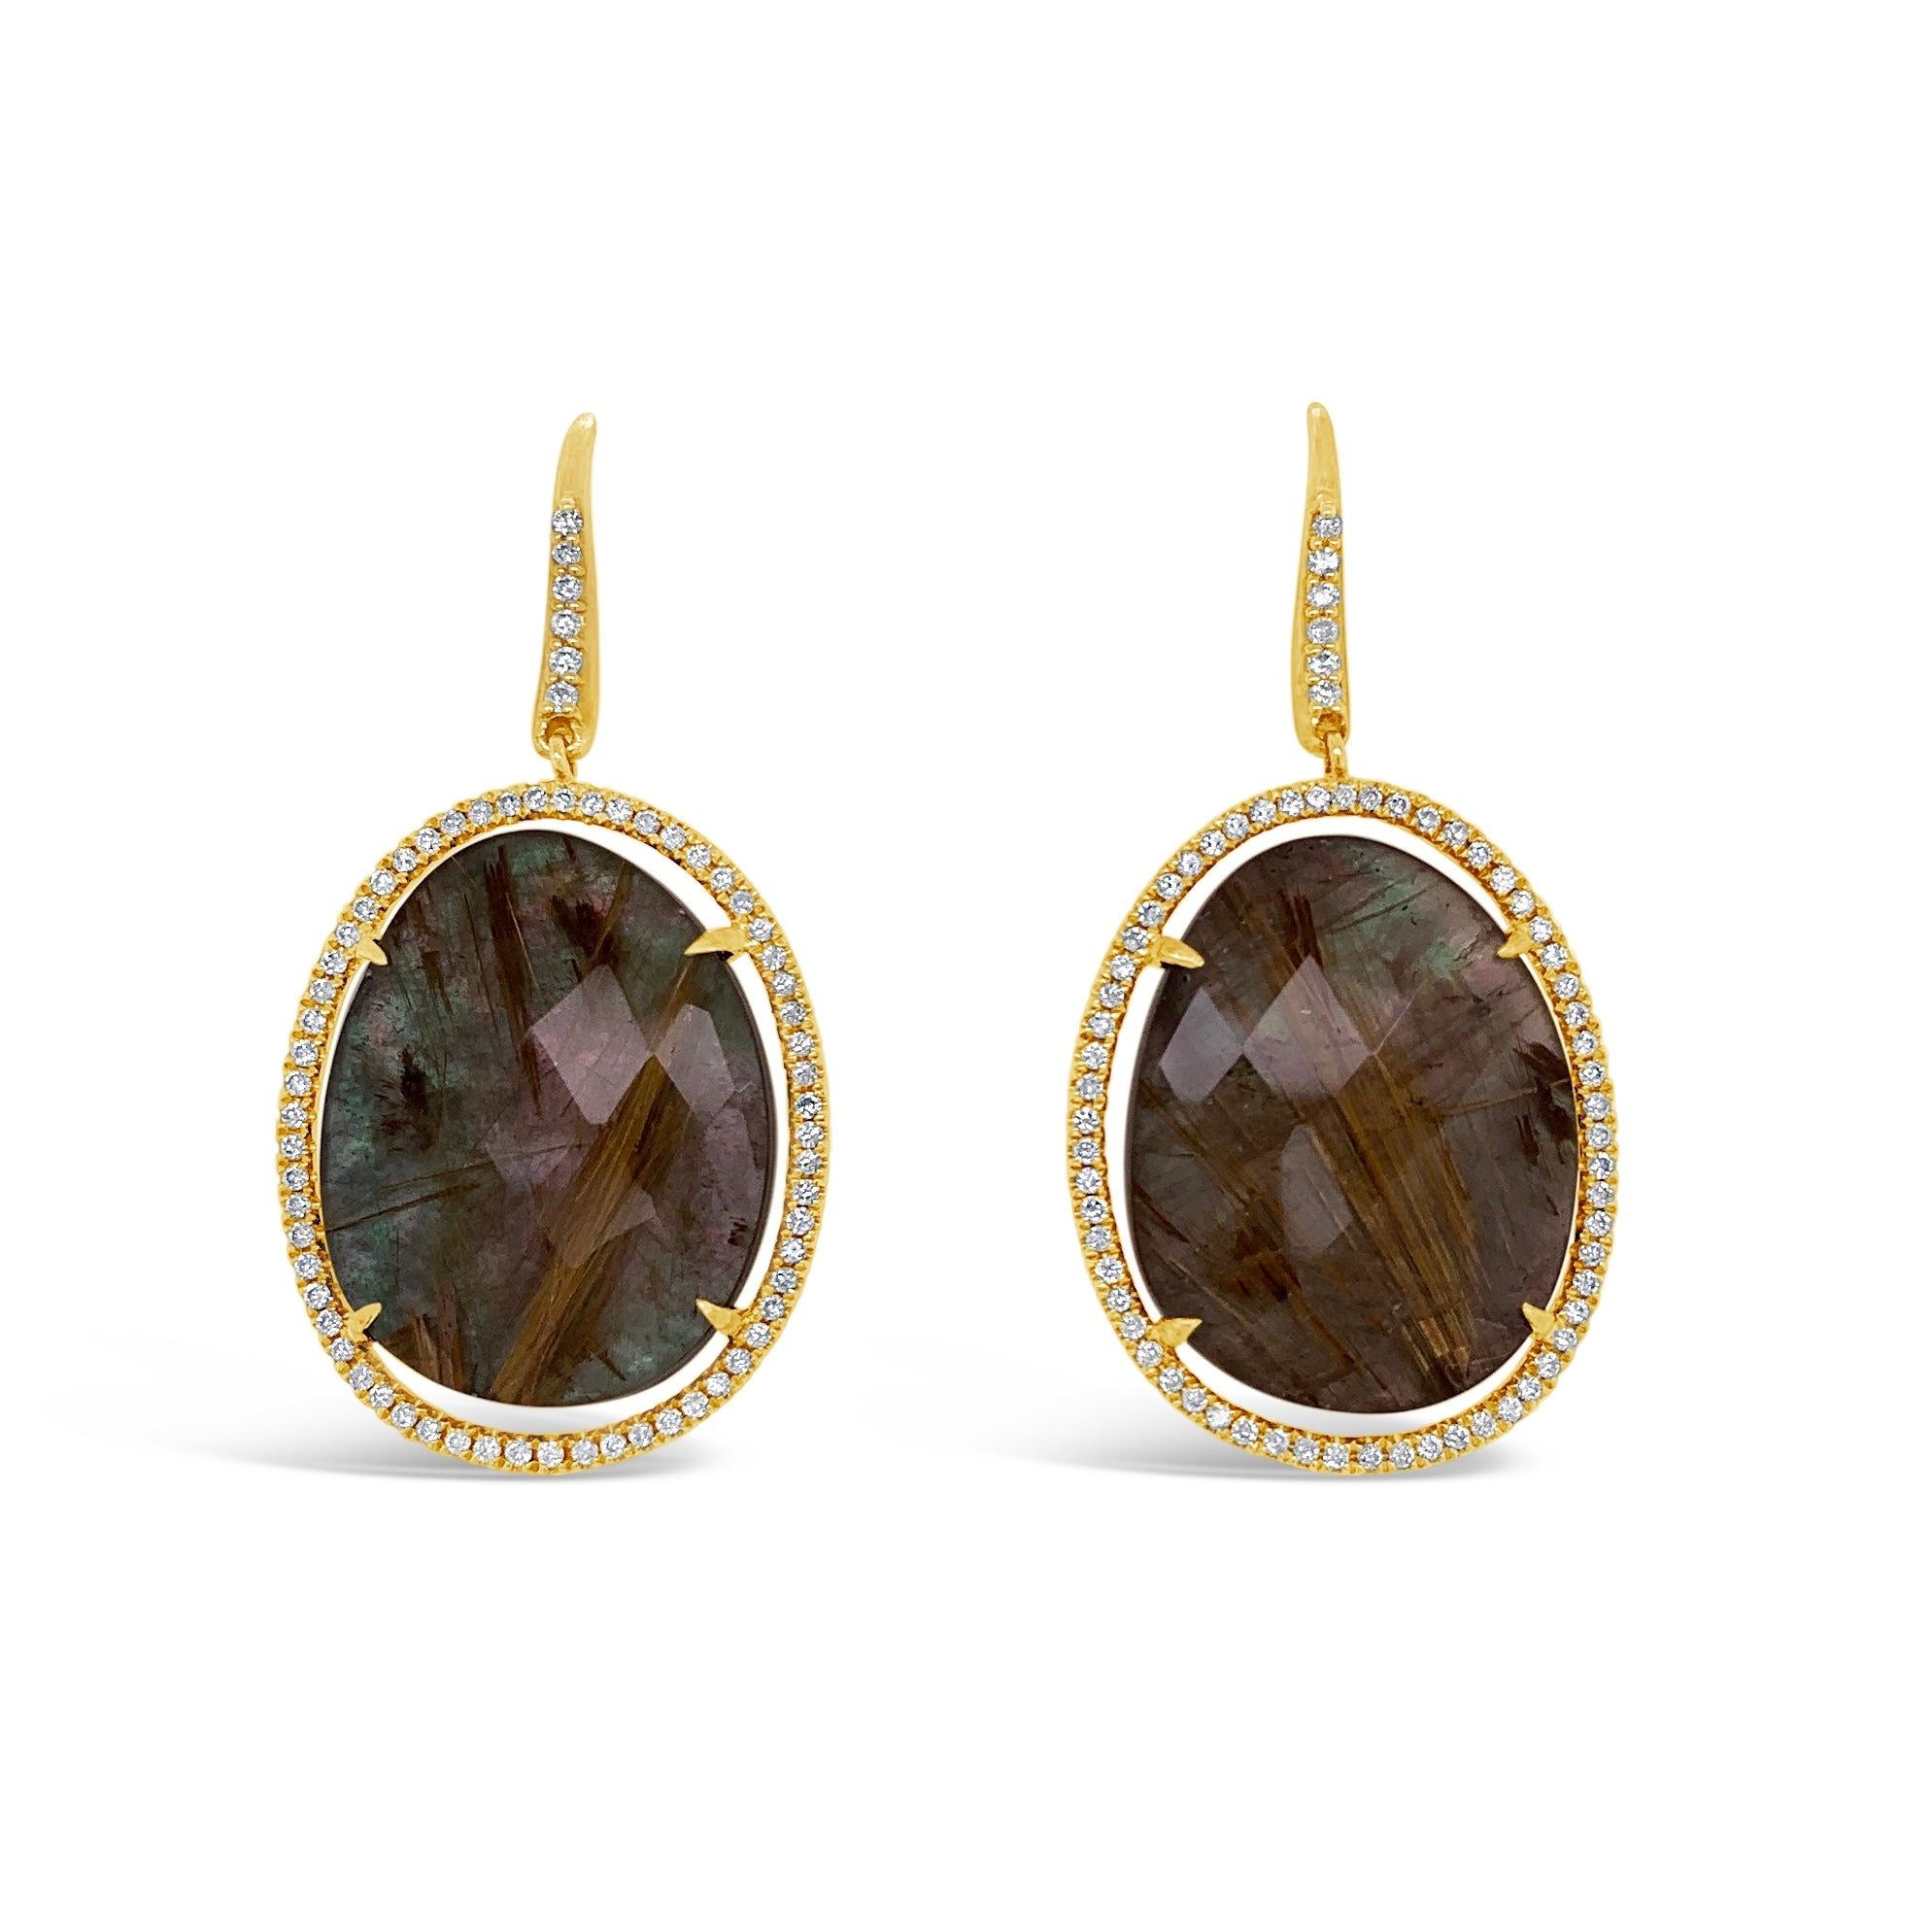 Black Mother-of-Pearl & Rutilated Quartz Earrings